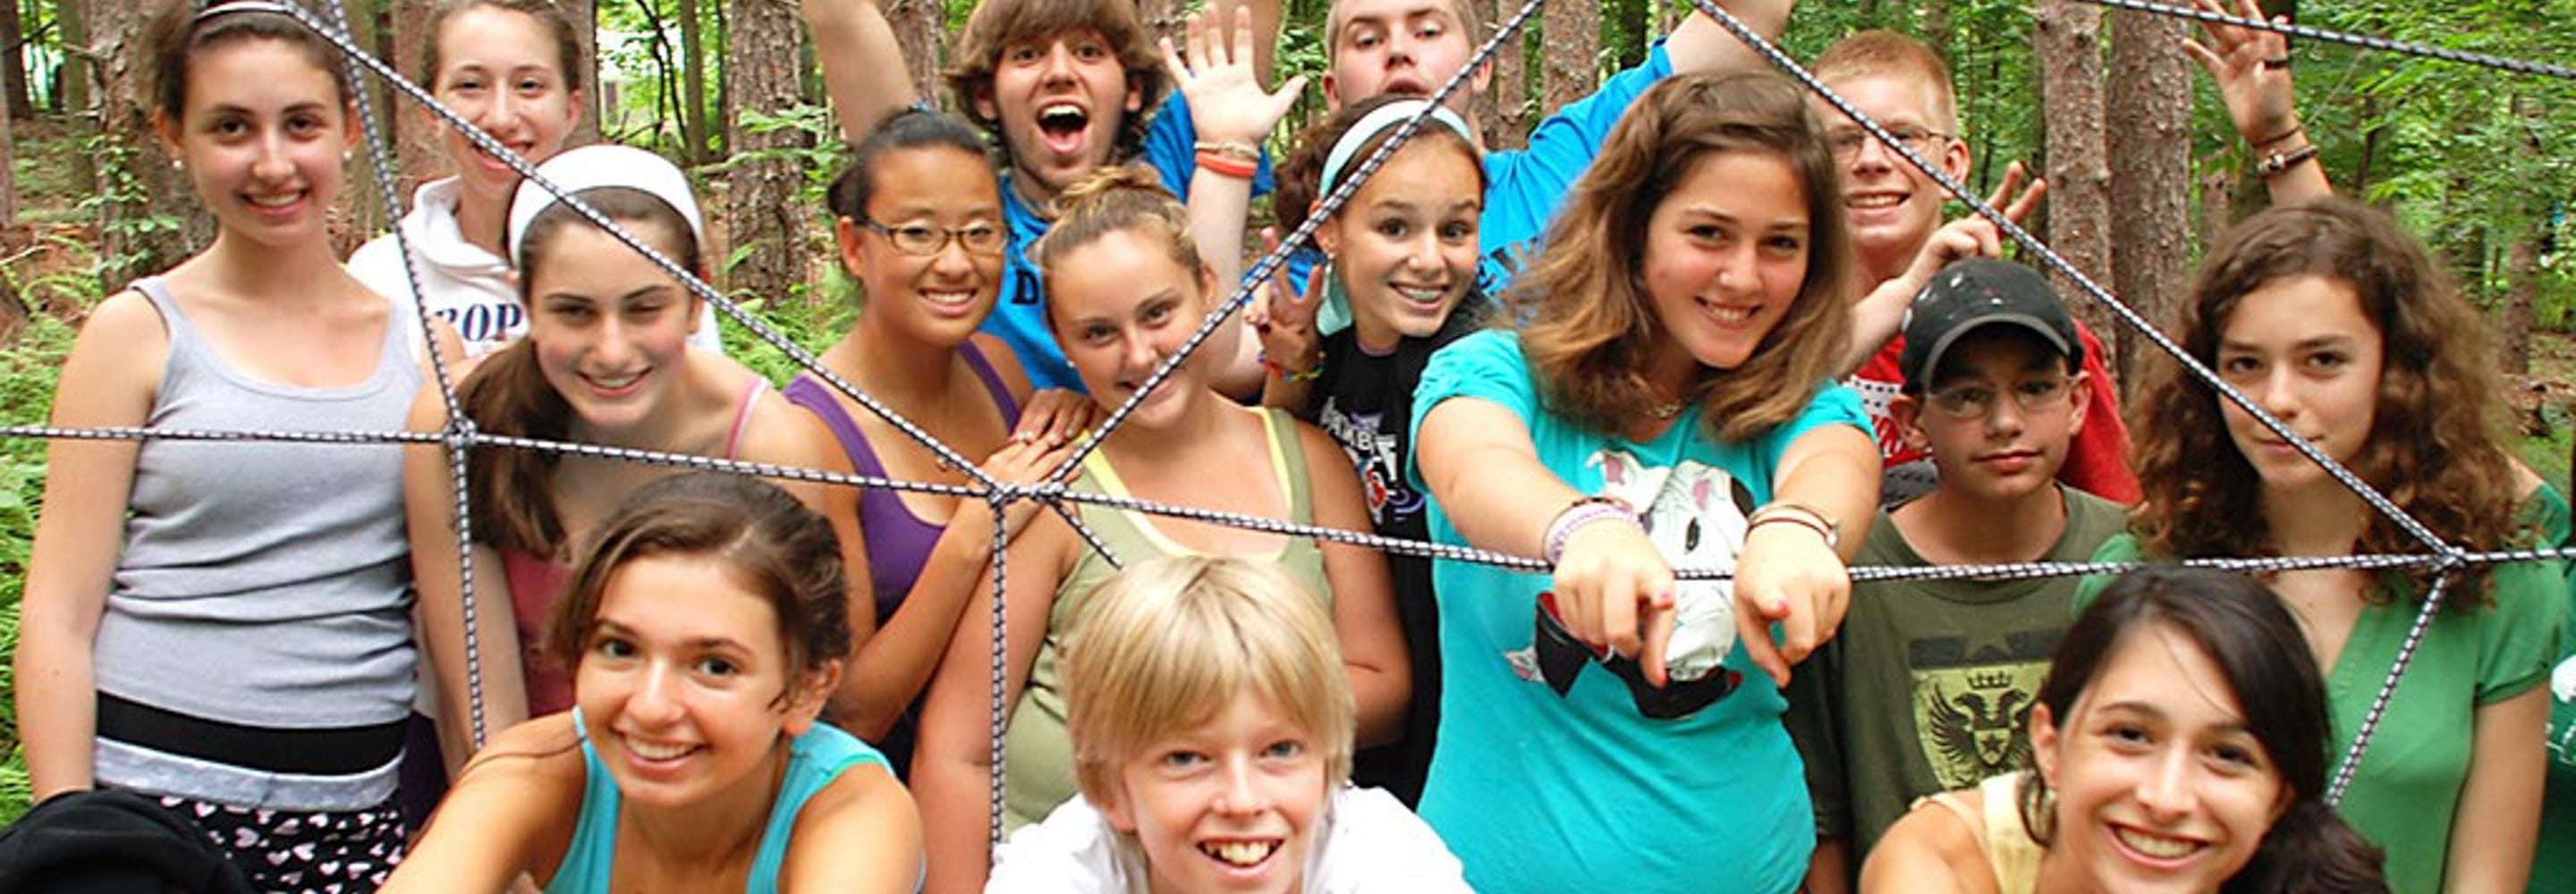 campers at ropes course